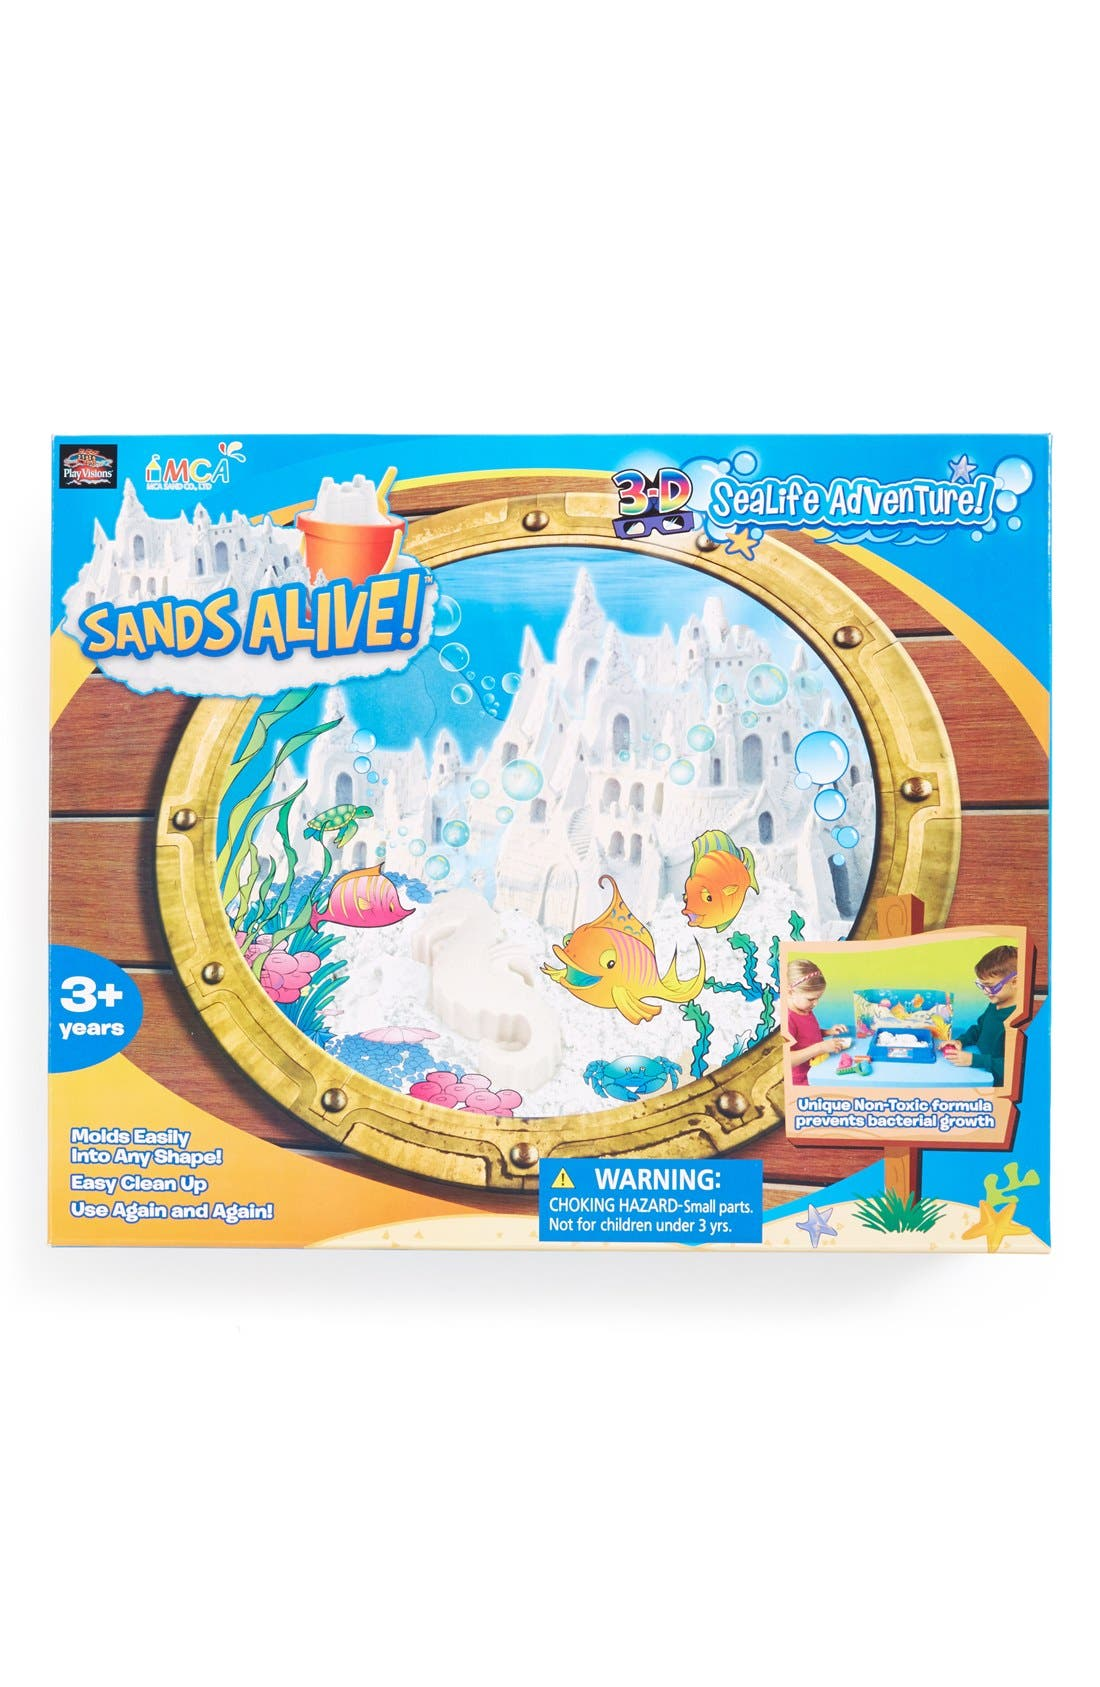 Alternate Image 1 Selected - Play Visions Toys 'Sands Alive! 3D Sea Life Adventure' Indoor Play Sand Kit